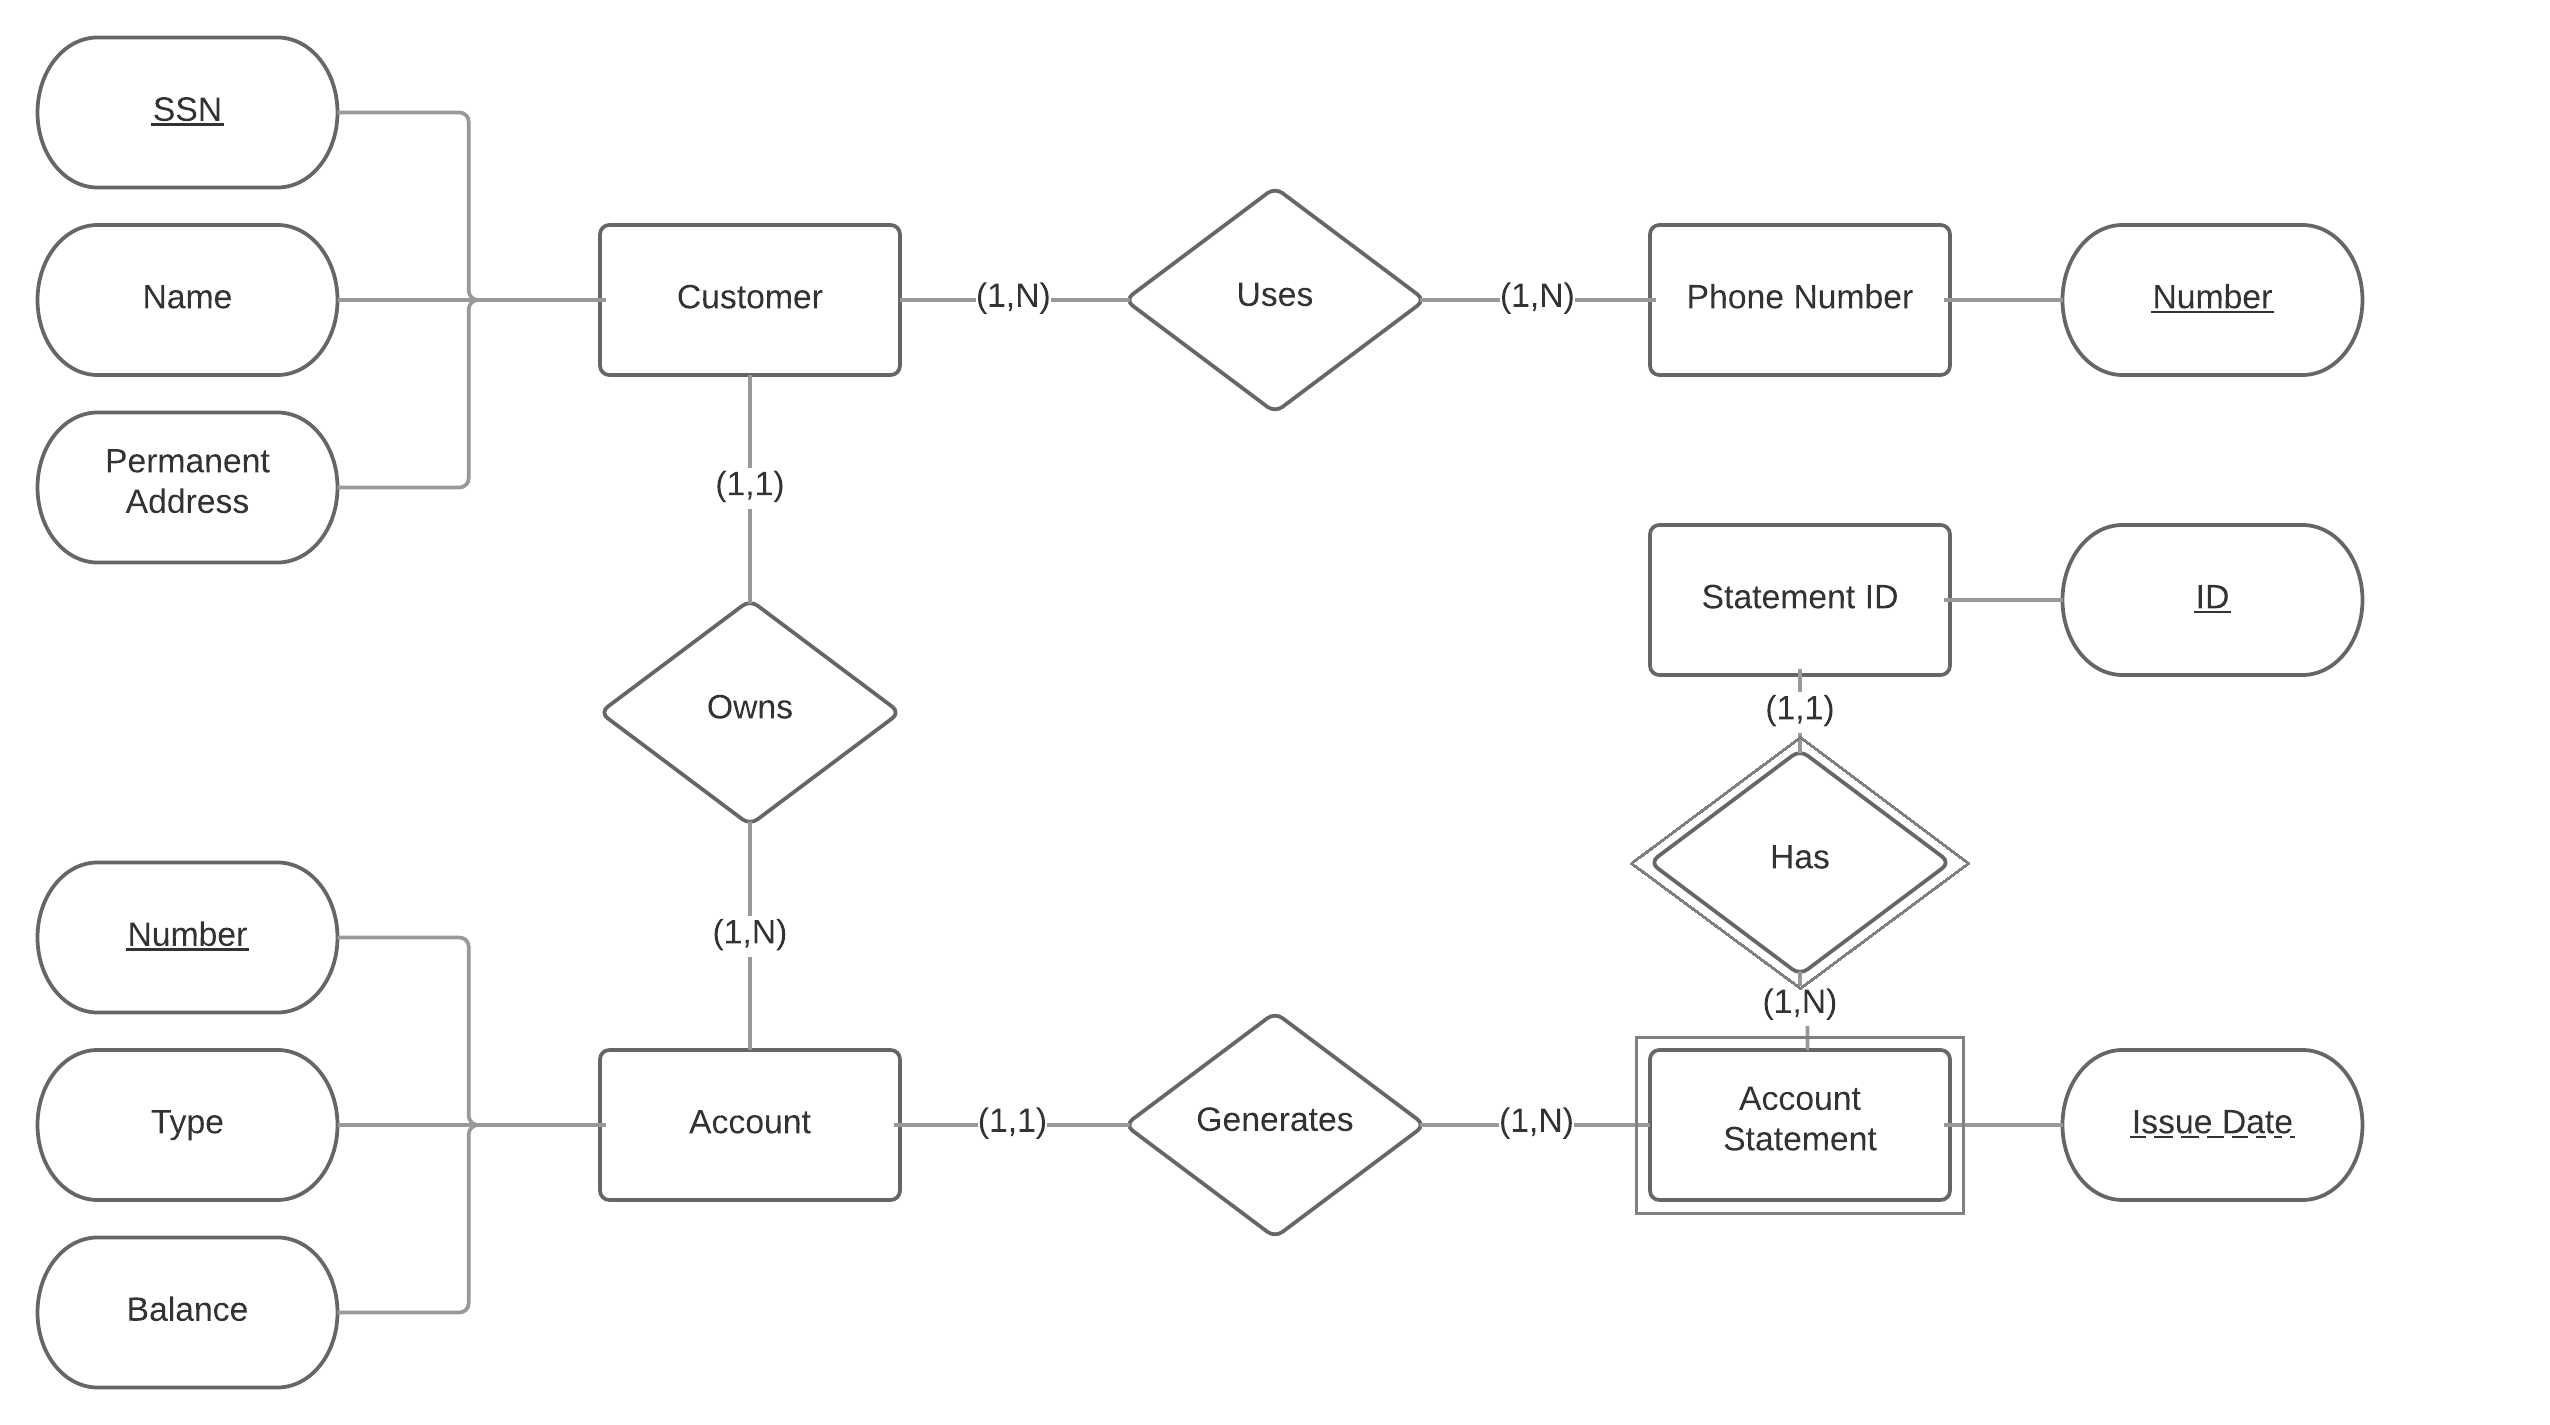 Is My Entity-Relationship Diagram About Customers And